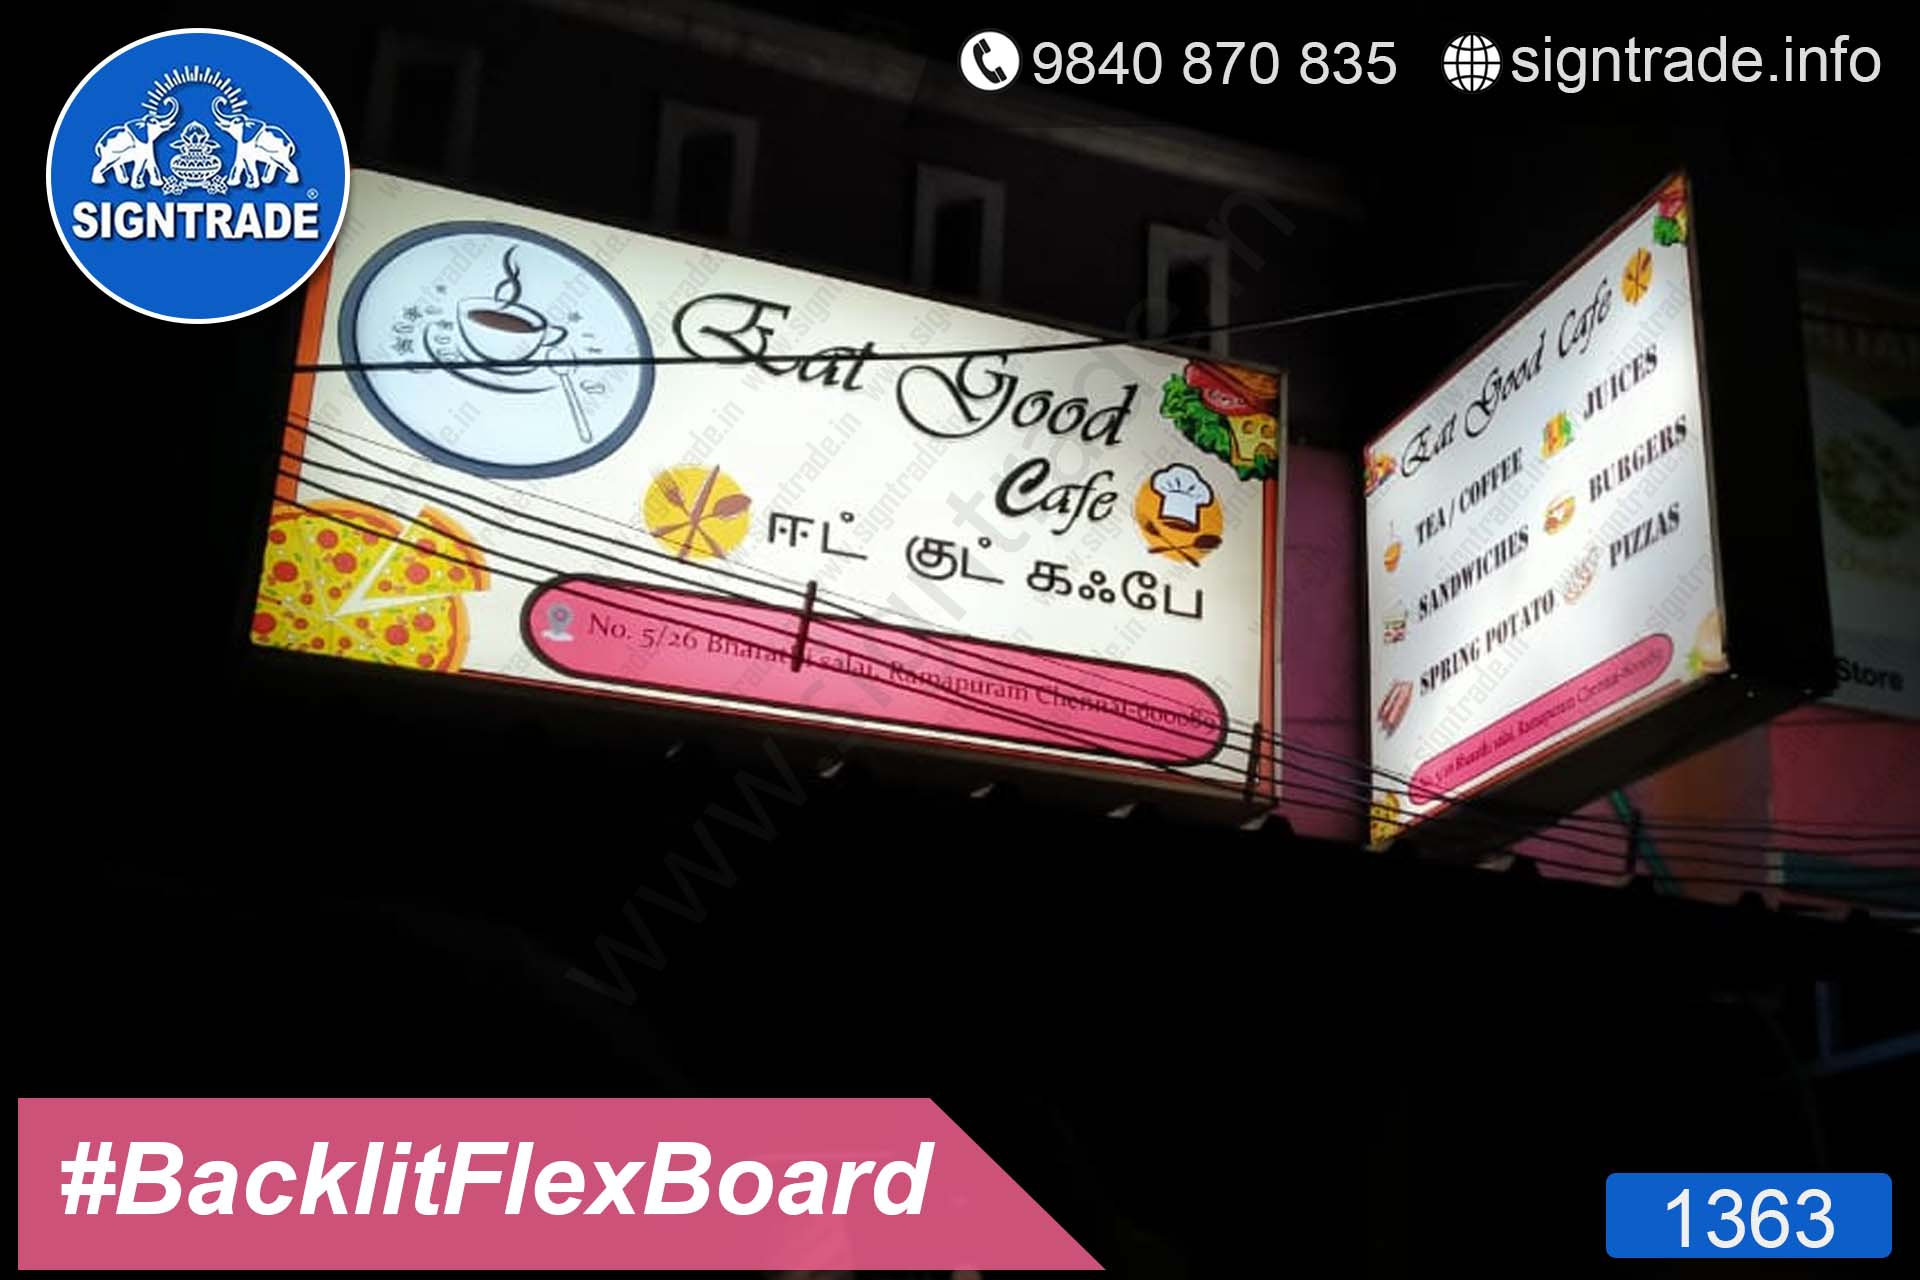 Eat Good Cafe - Ramapuram - Chennai - SIGNTRADE - Backlit Flex Board Manufactures in Chennai